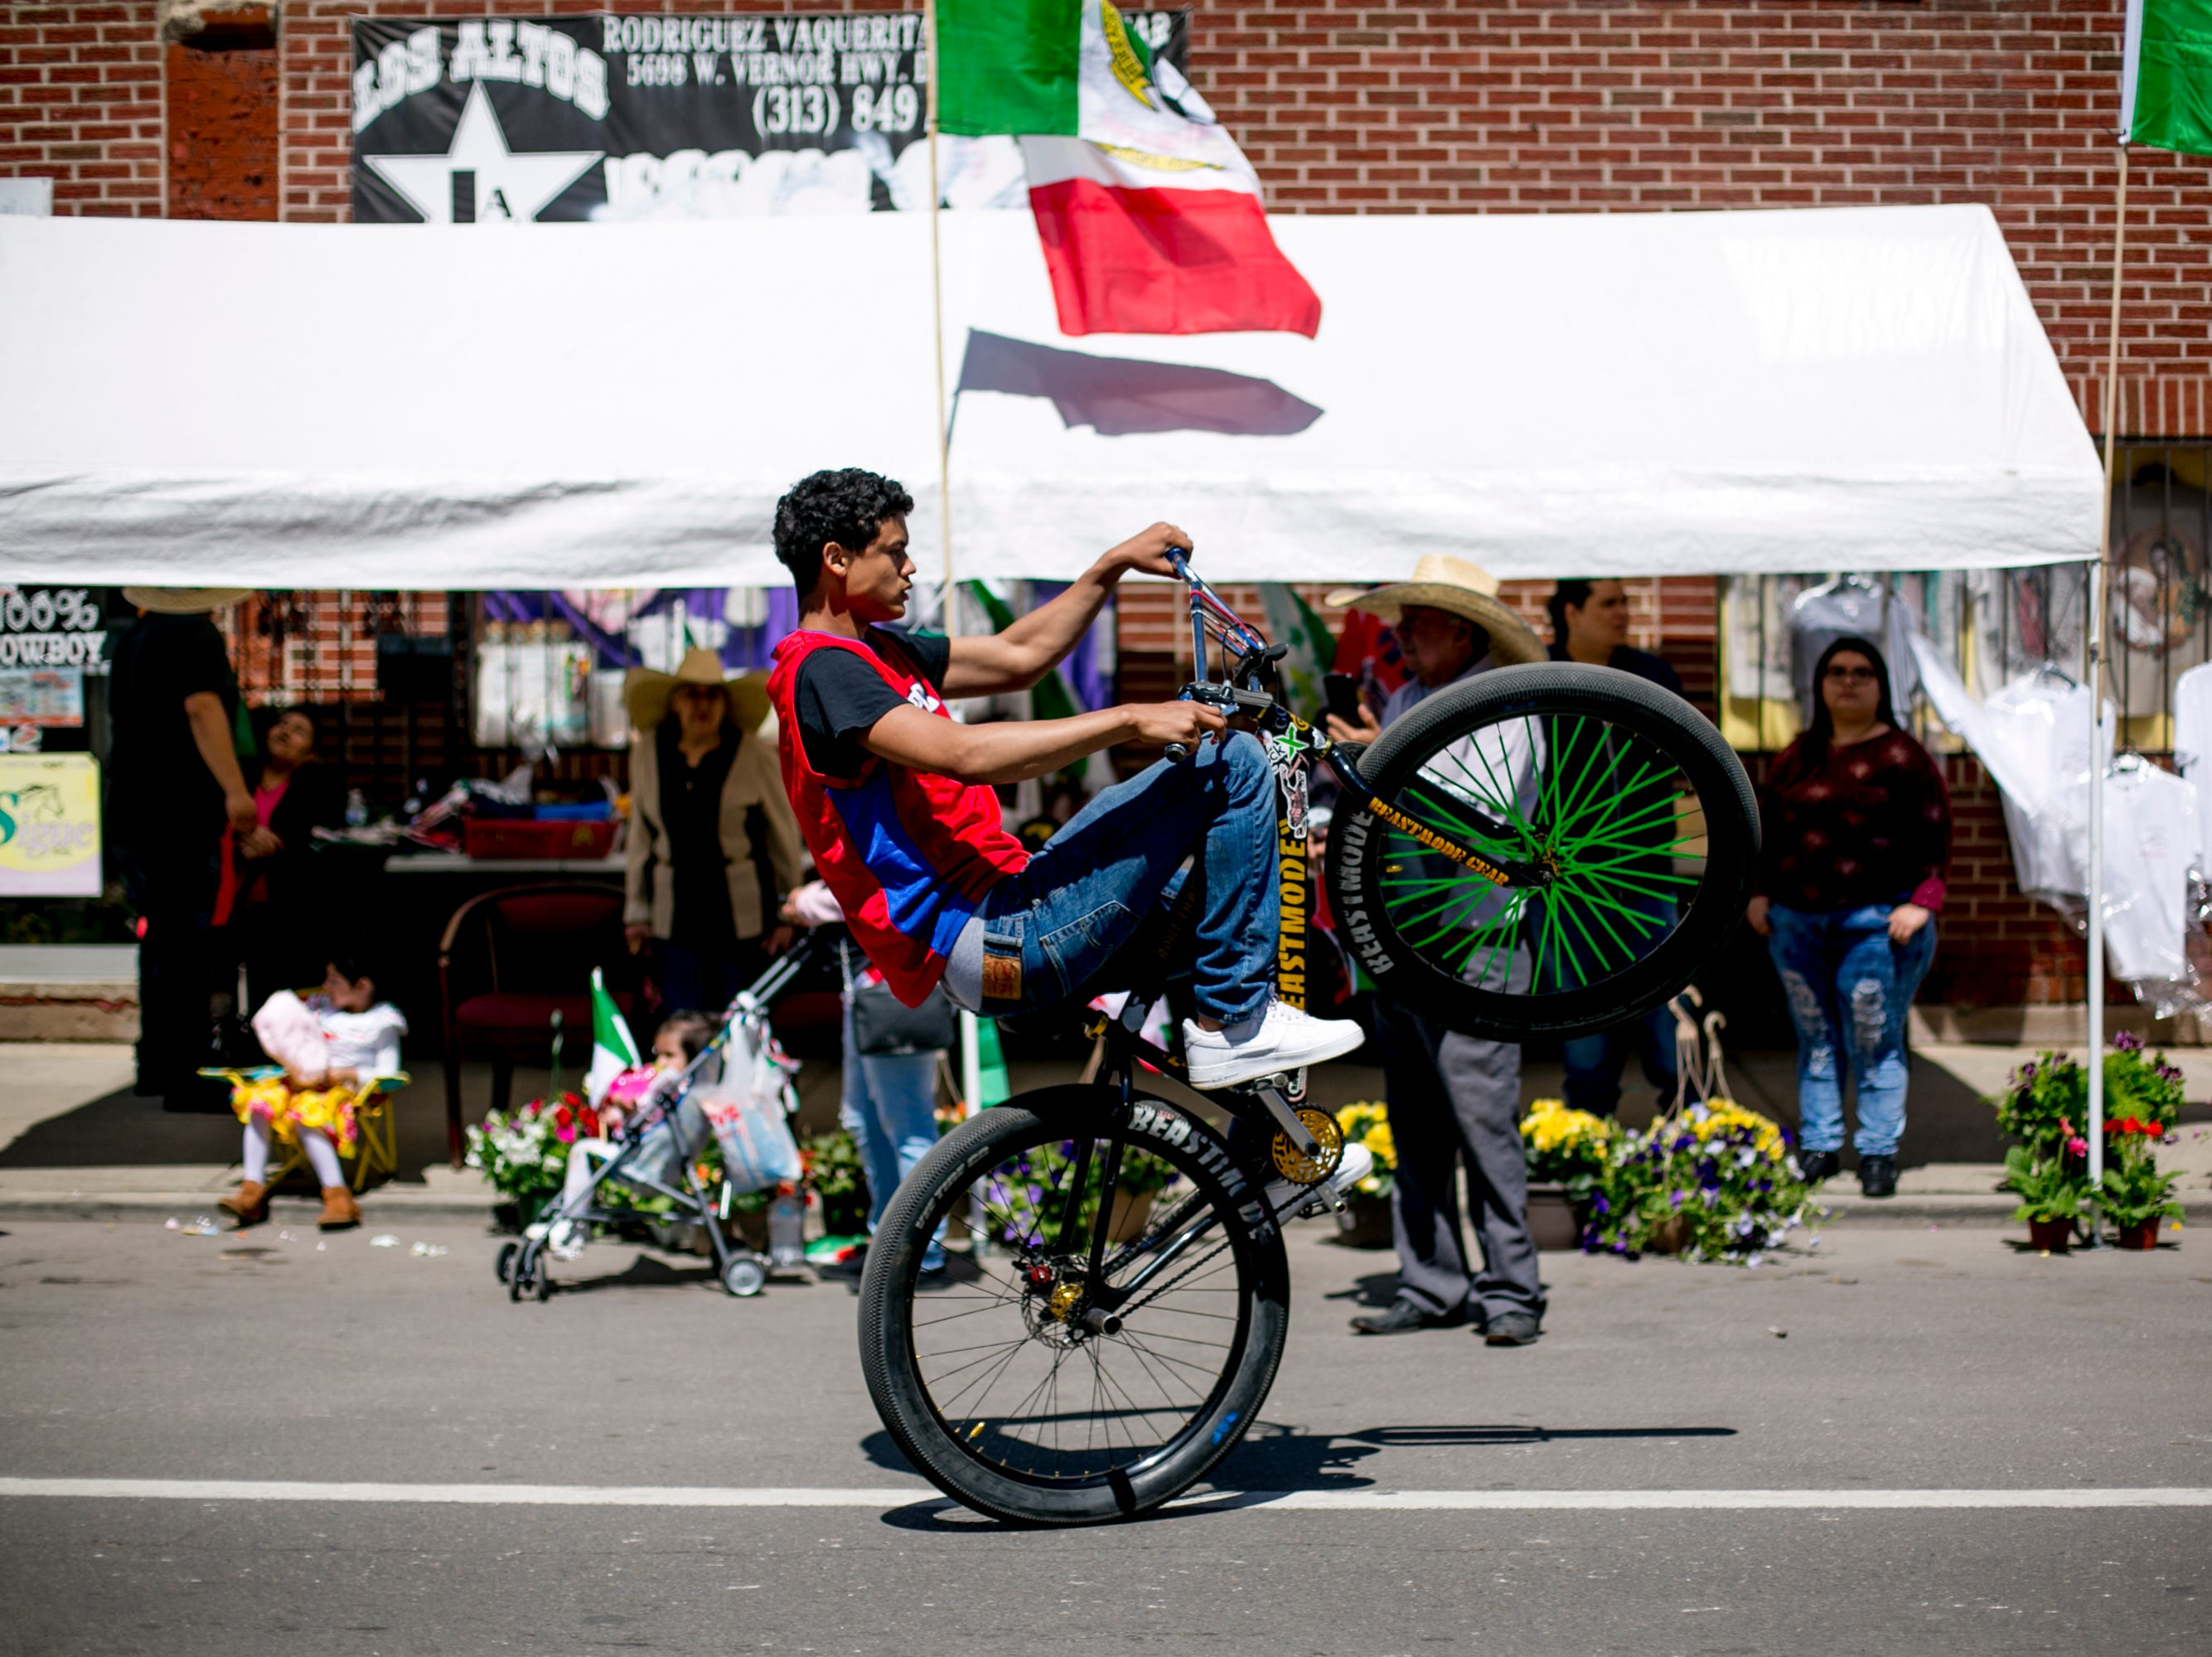 A man rides a bike in the 55th Annual Cinco de Mayo parade along Vernor Highway.